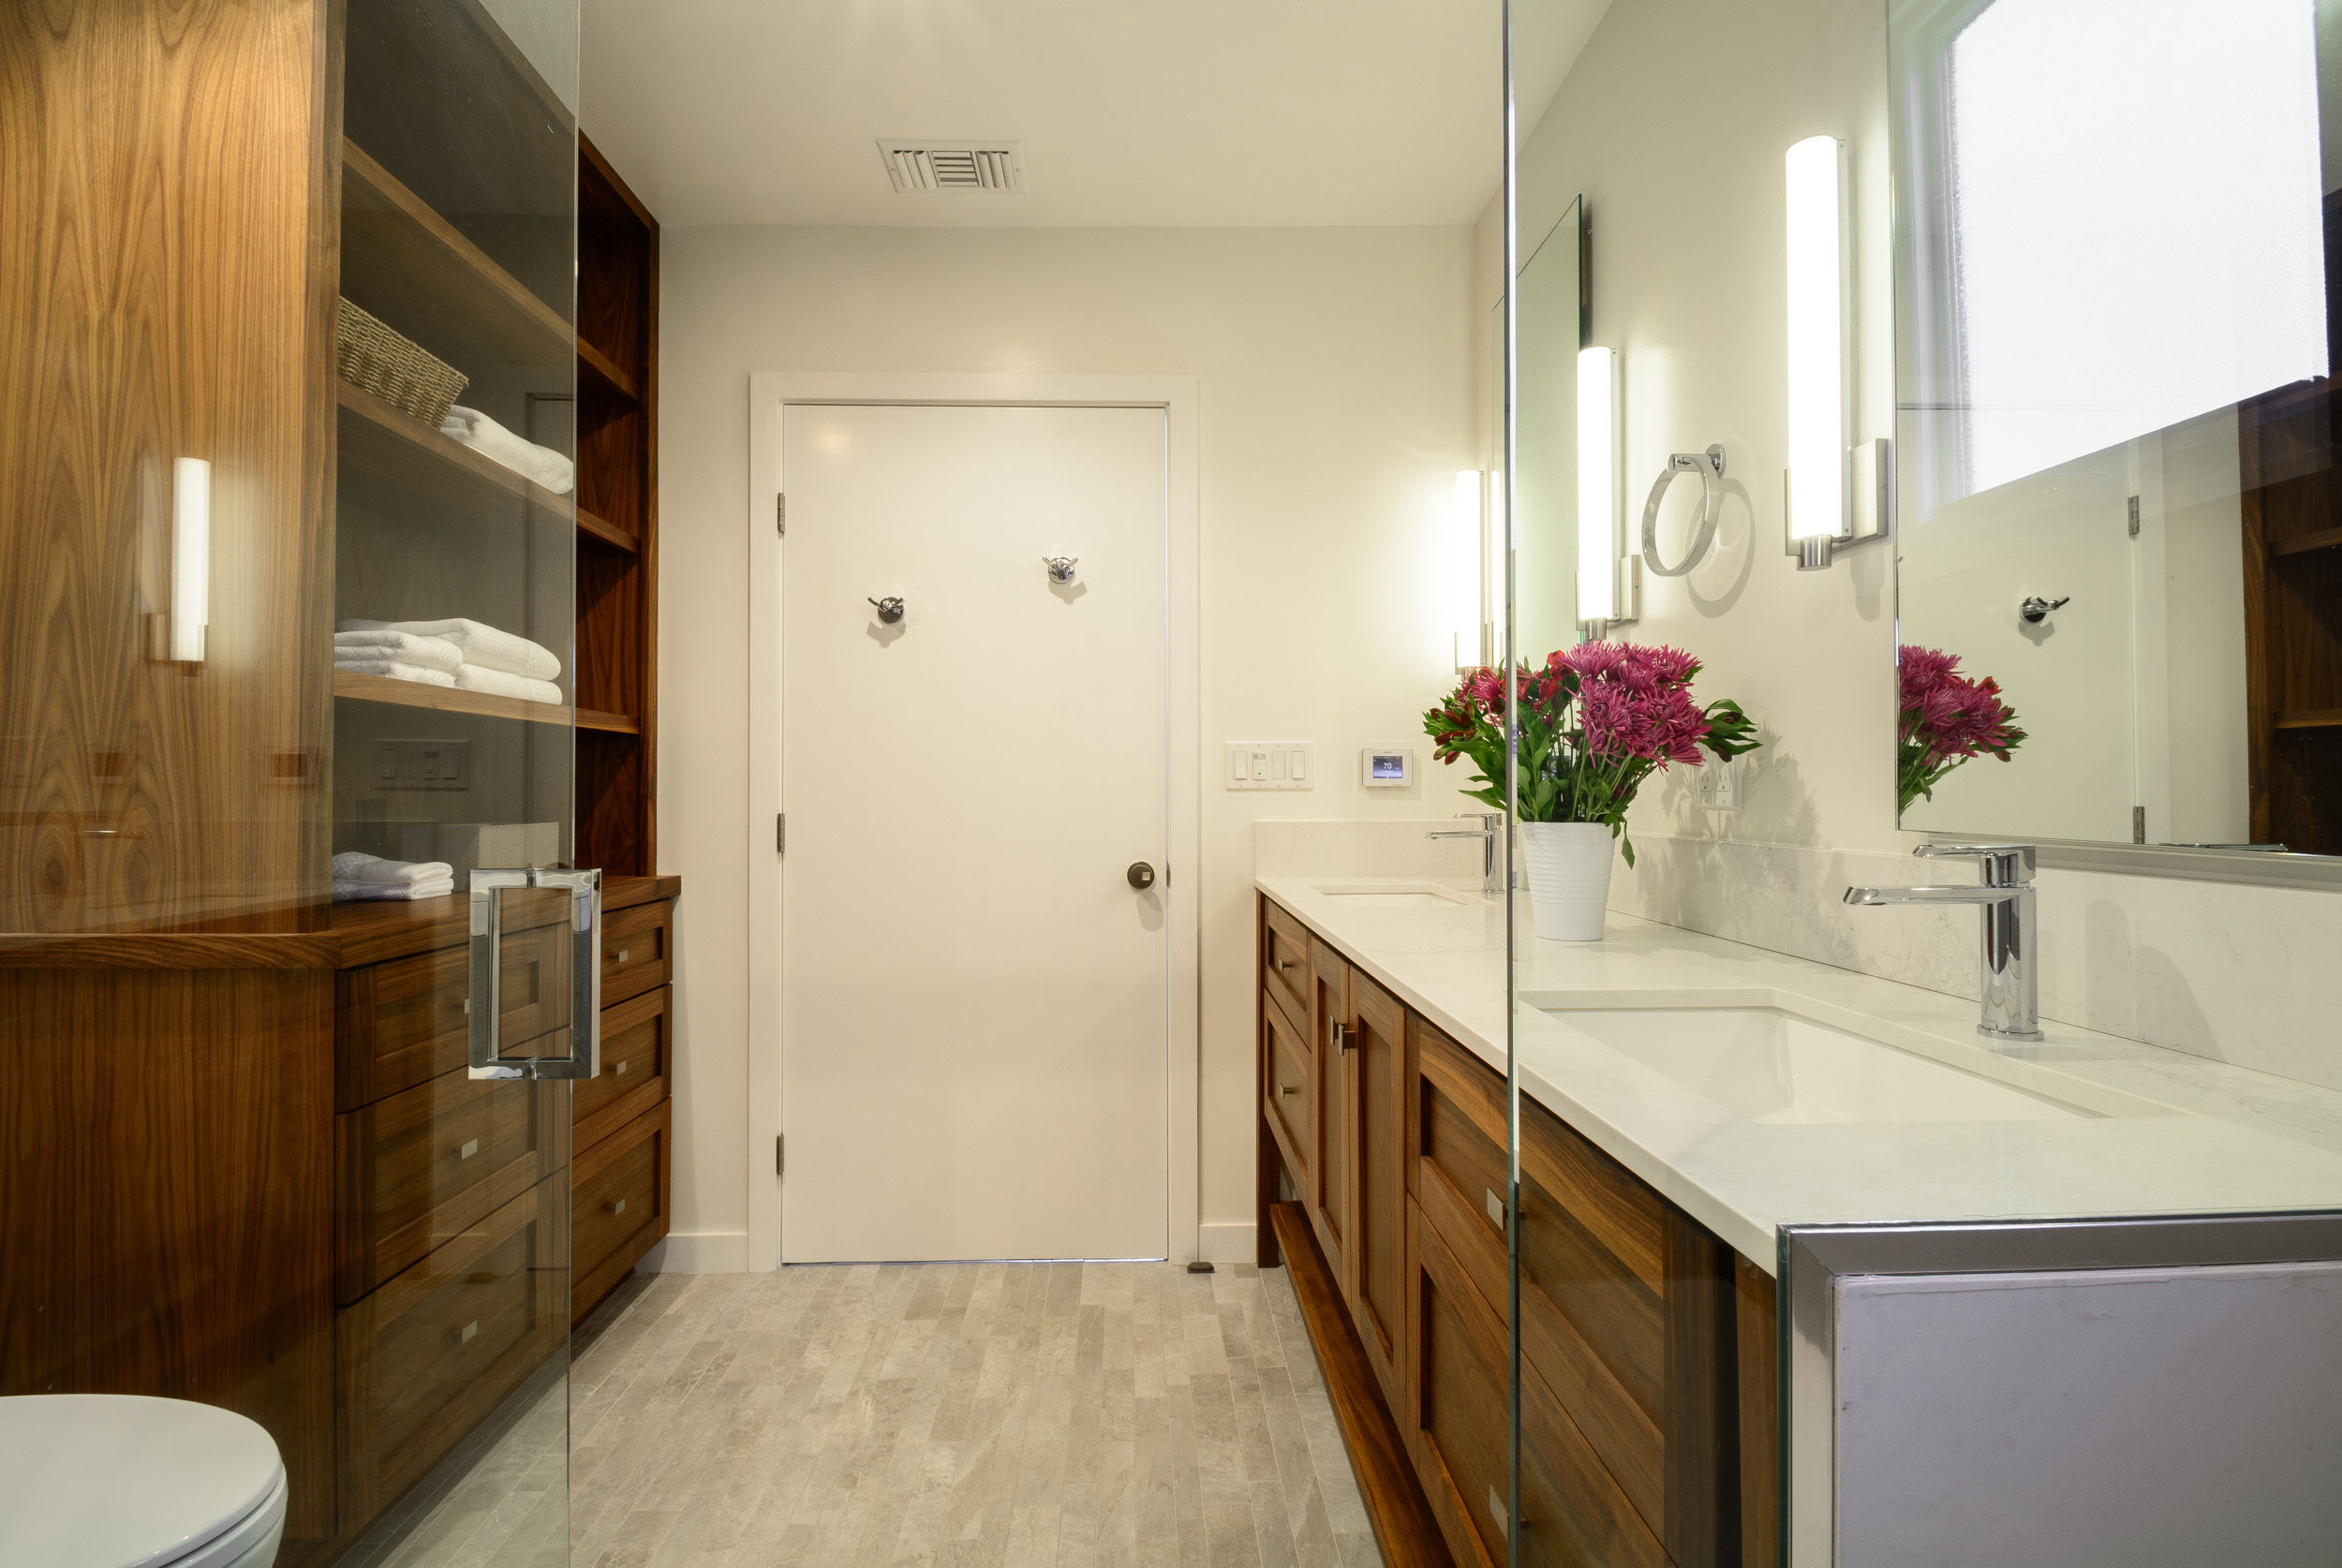 Sophisticated mid-century bathroom with an abundance of walnut storage cabinetry